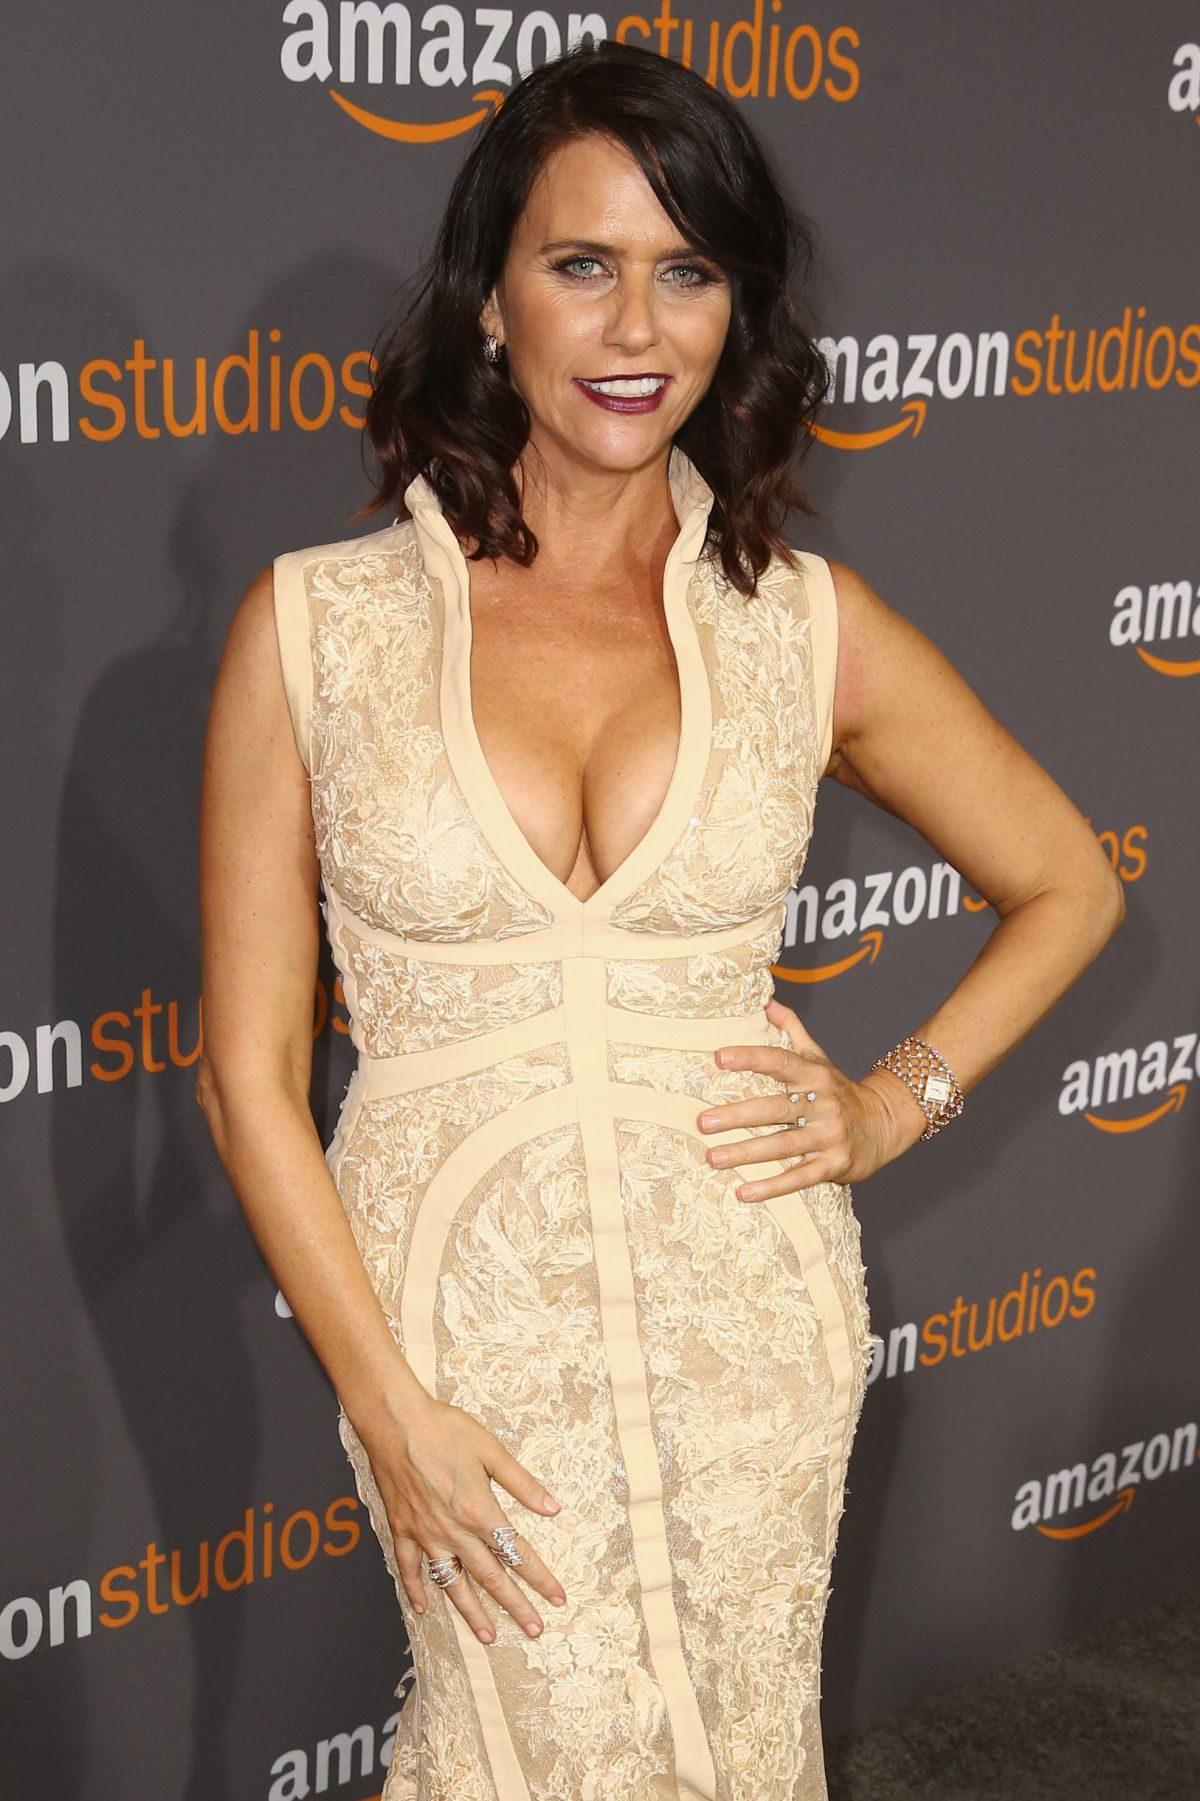 AMY LANDECKER at Amazon Studios' Golden Globes Party in Beverly Hills 01/08/